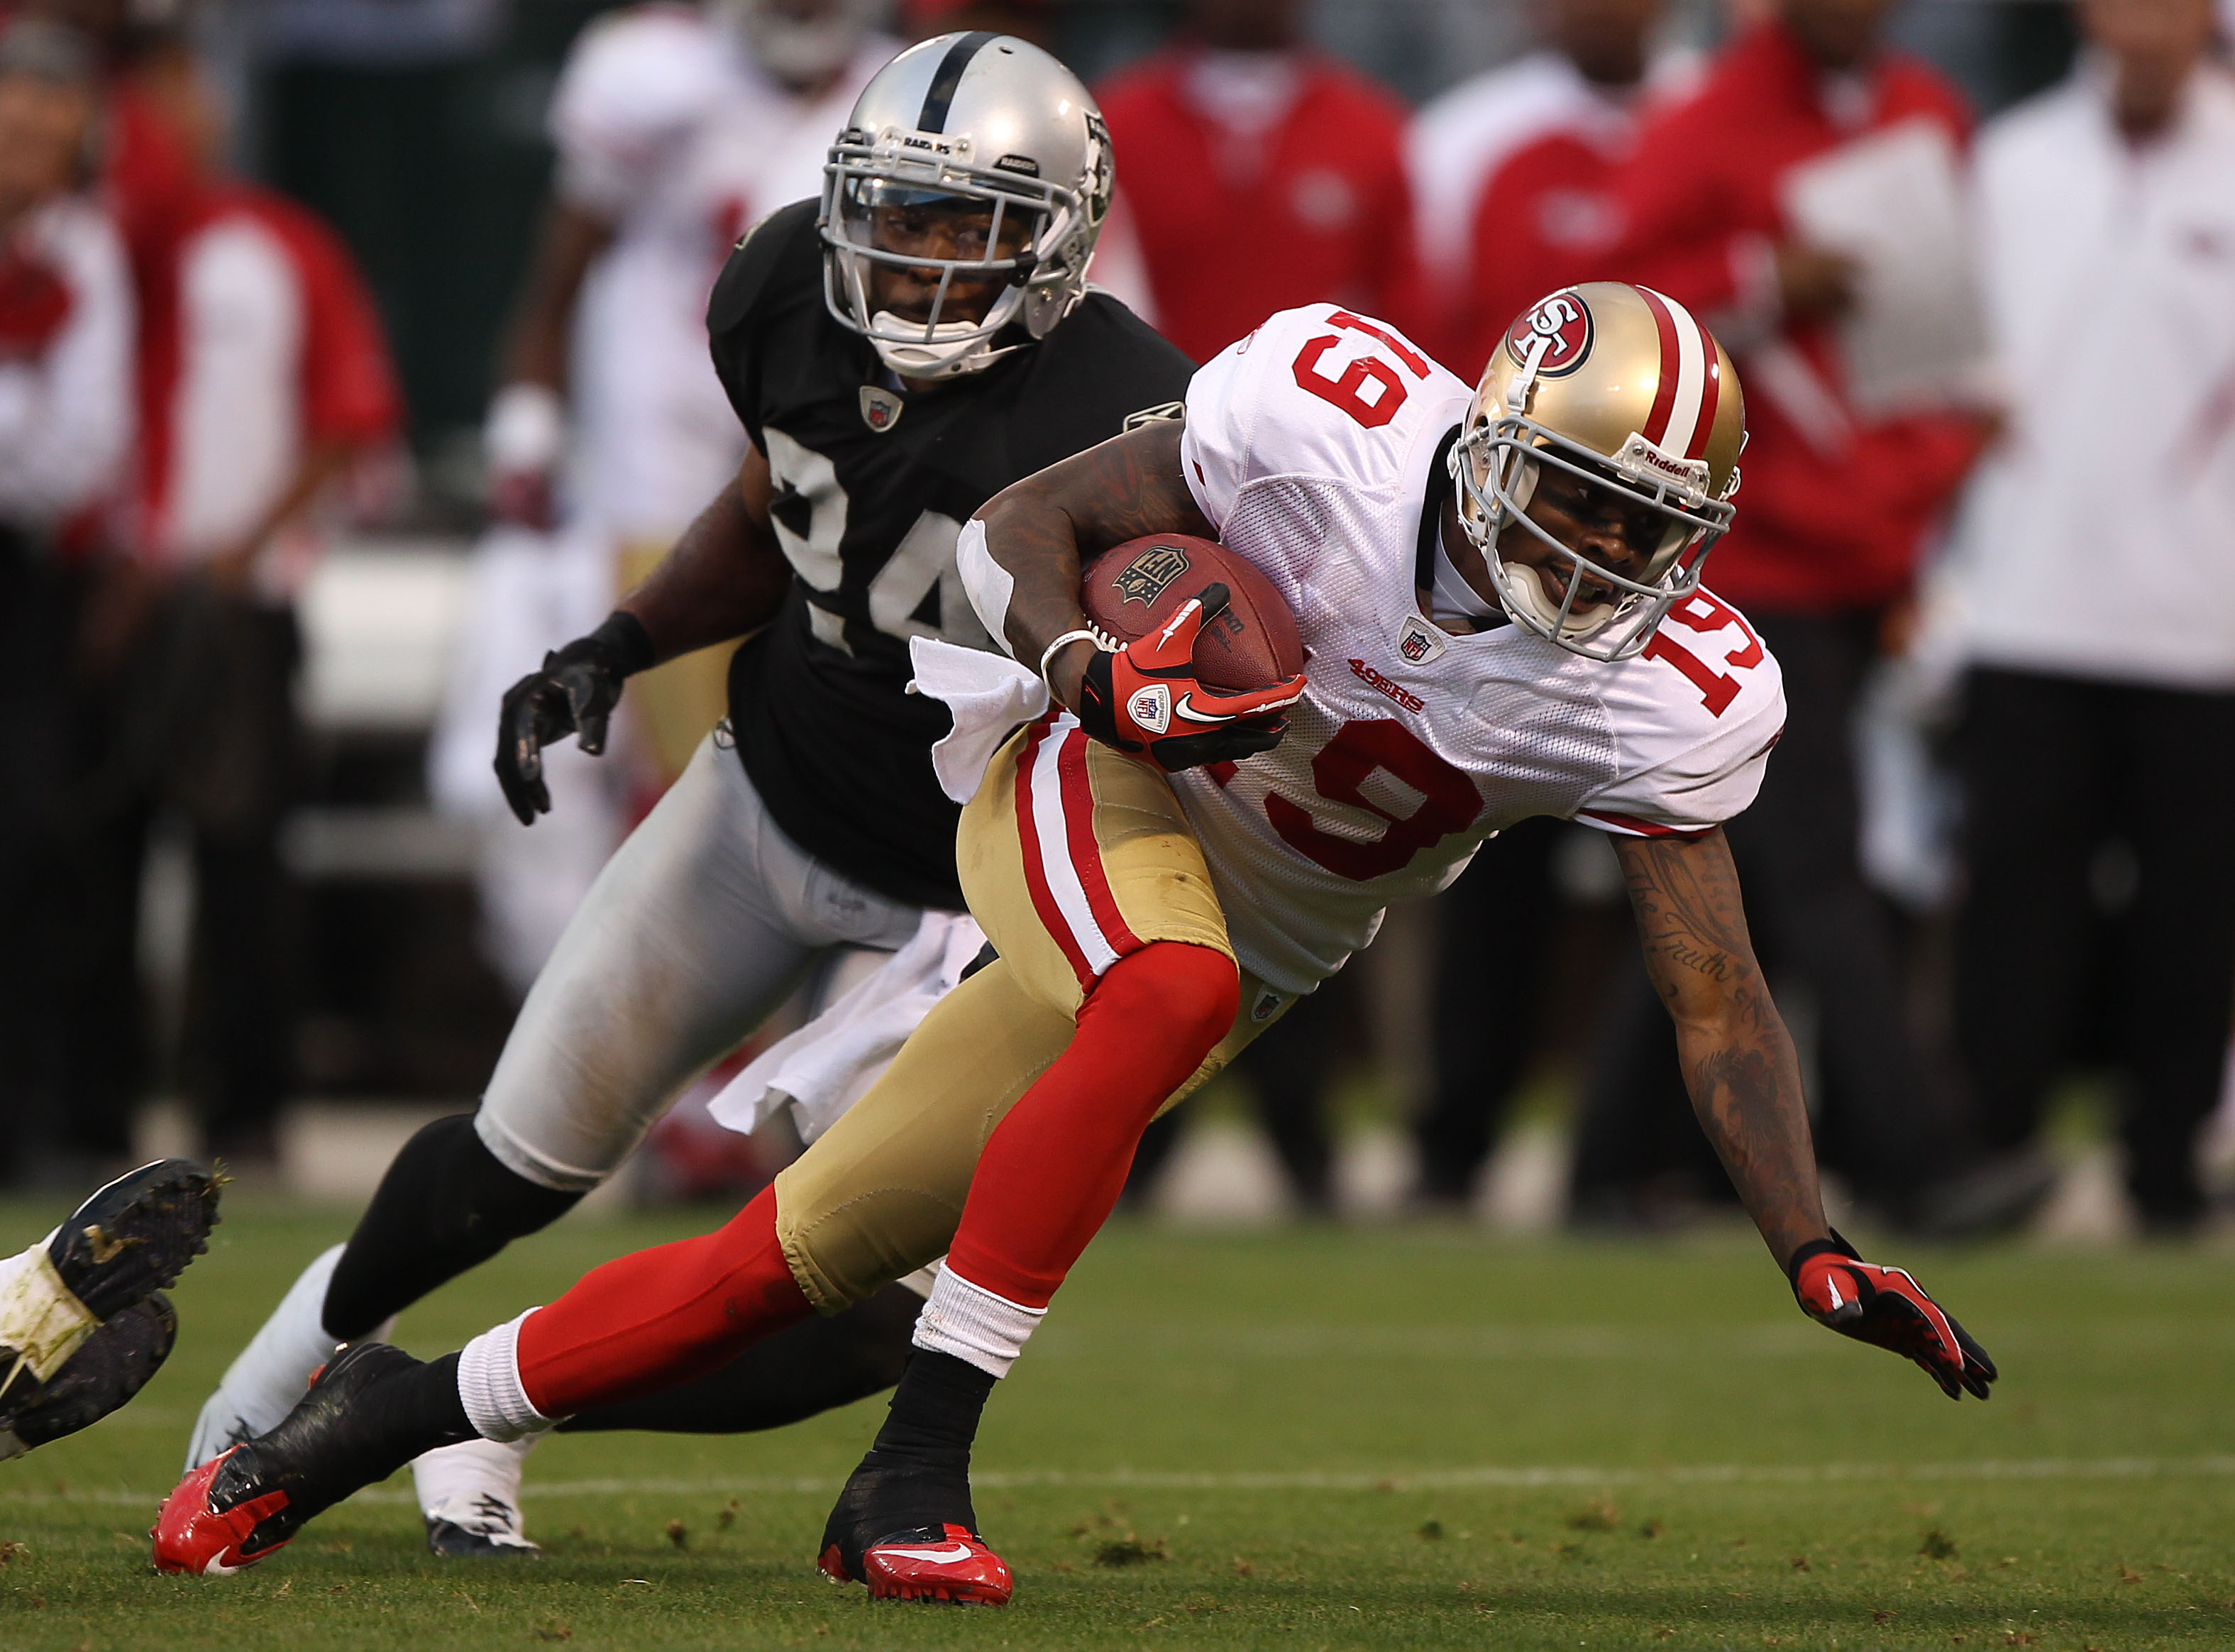 OAKLAND, CA - AUGUST 28: Ted Ginn #19 of the San Francisco 49er runs after a catch against Michael Huff #24 of the Oakland Raiders during an NFL preseason game at Oakland-Alameda County Coliseum on August 28, 2010 in Oakland, California. (Photo by Jed Jac